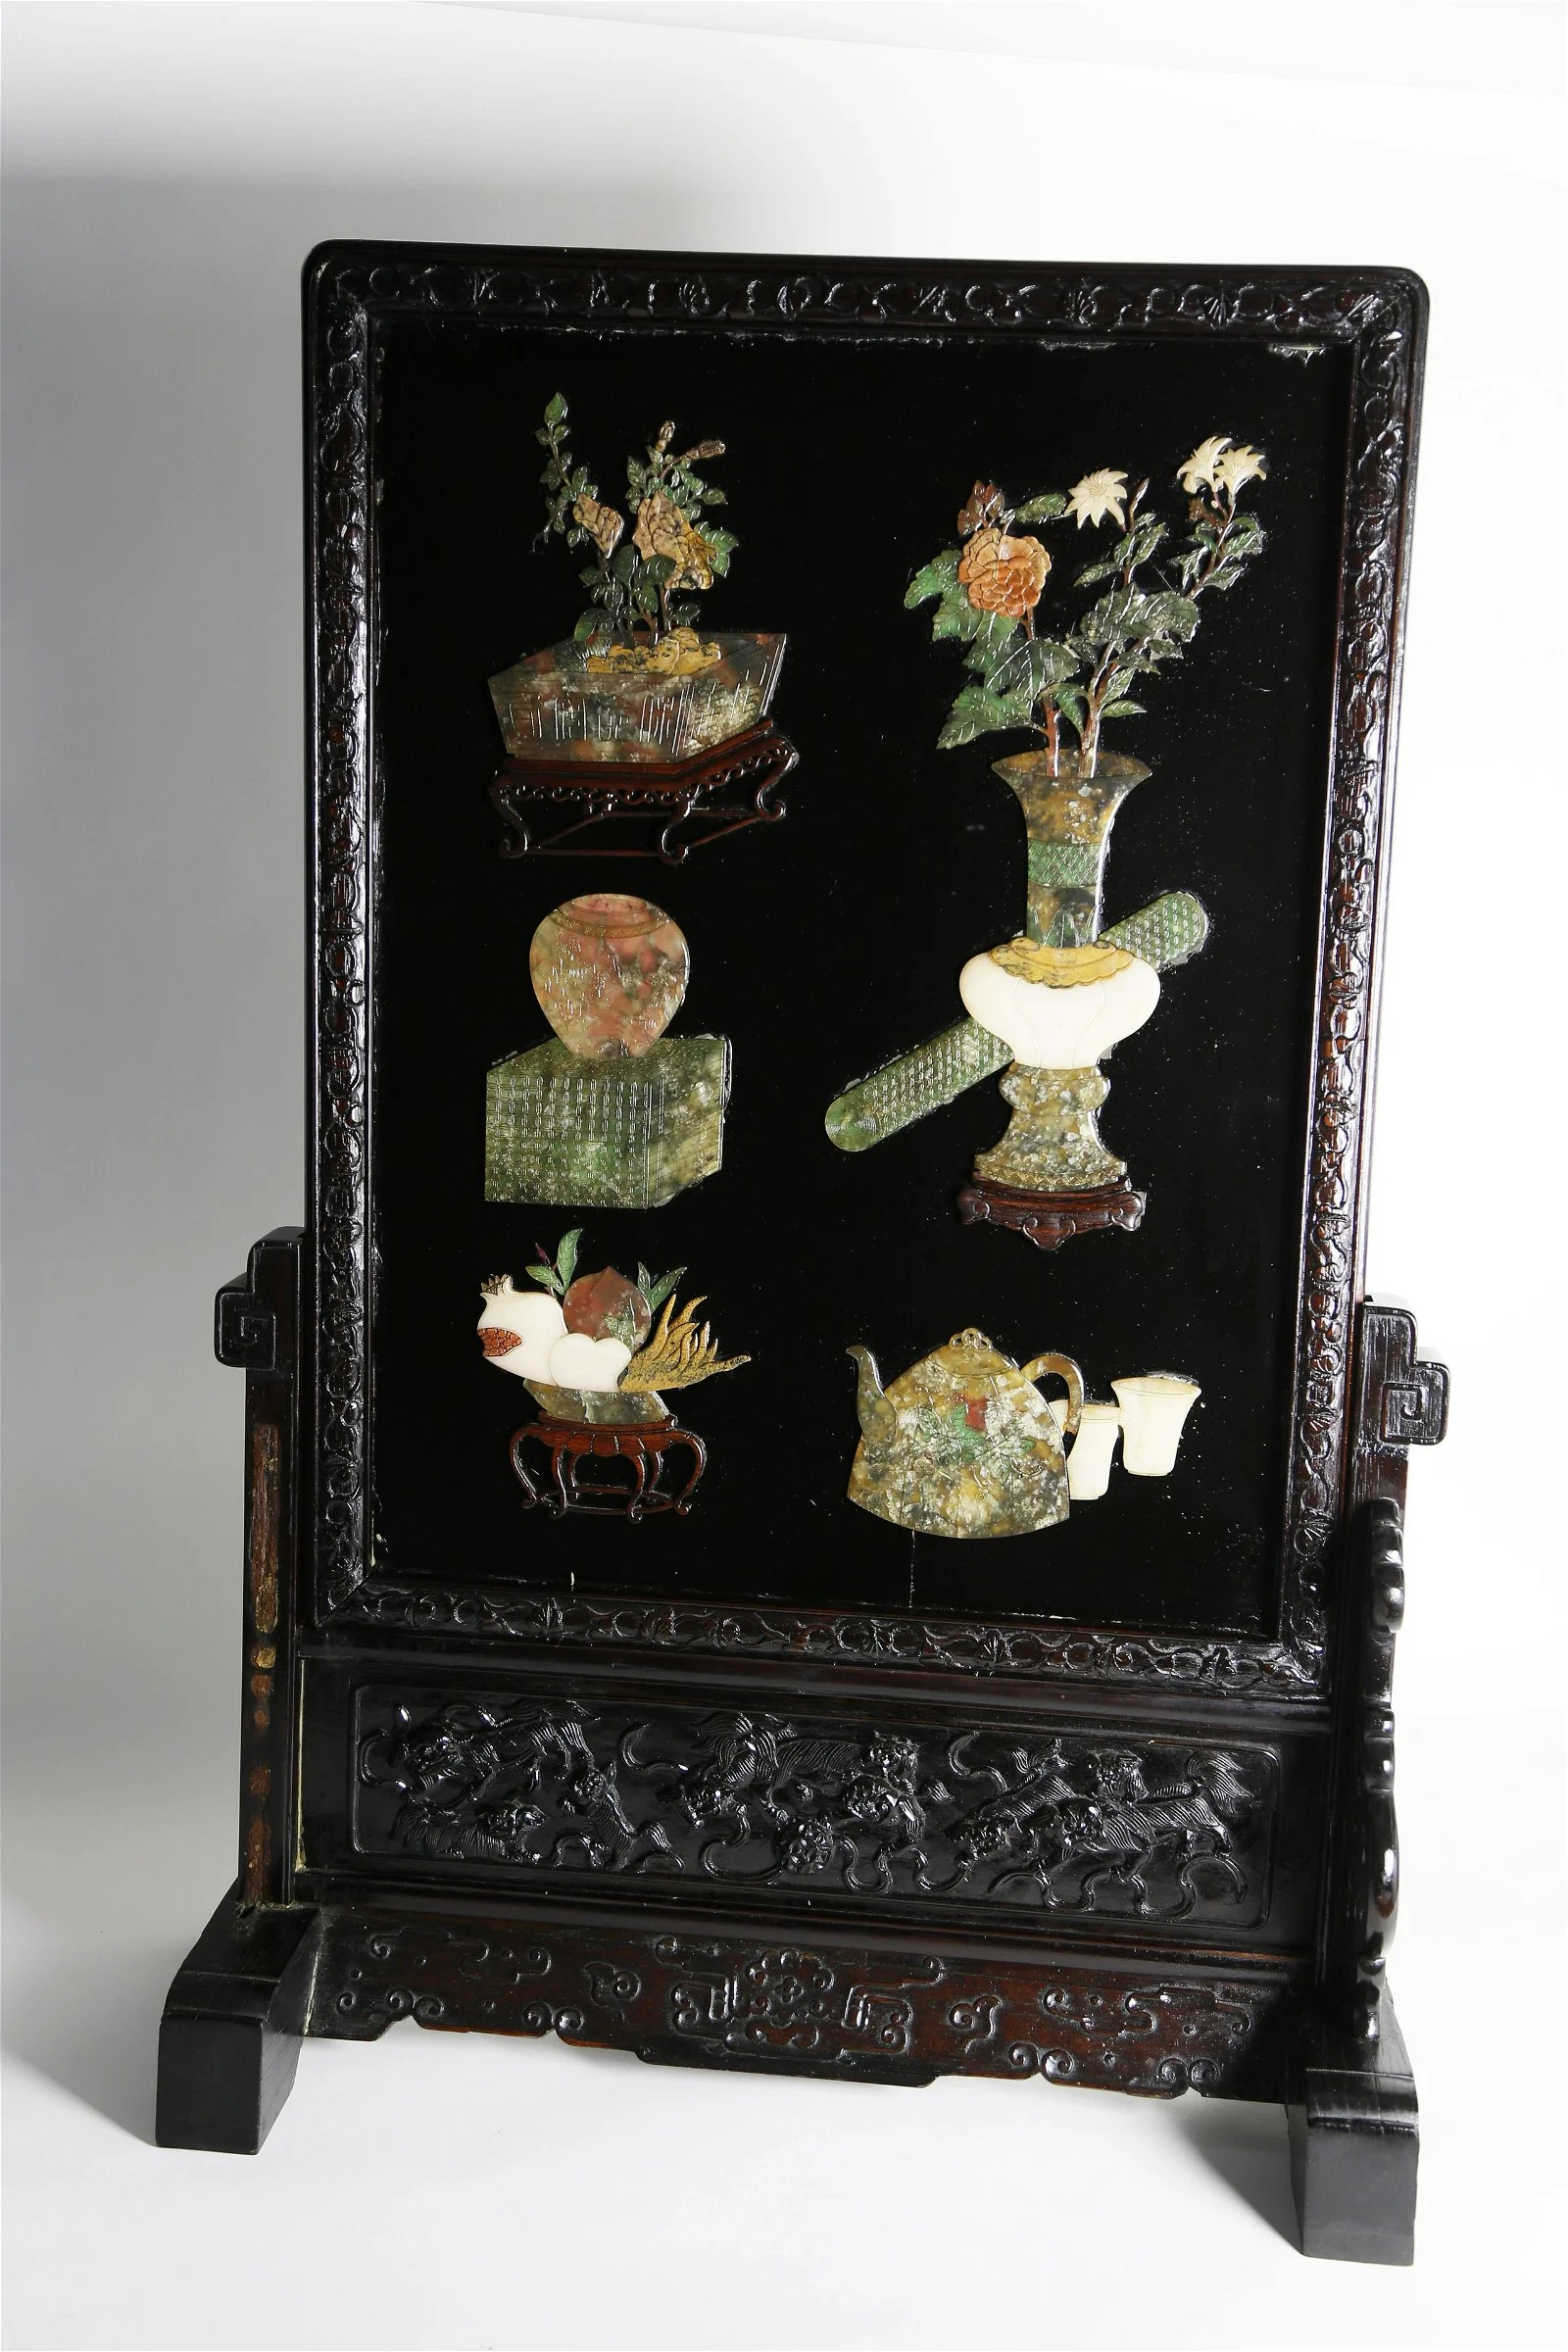 Chinese Hardstone Table Screen, mid 19th Century